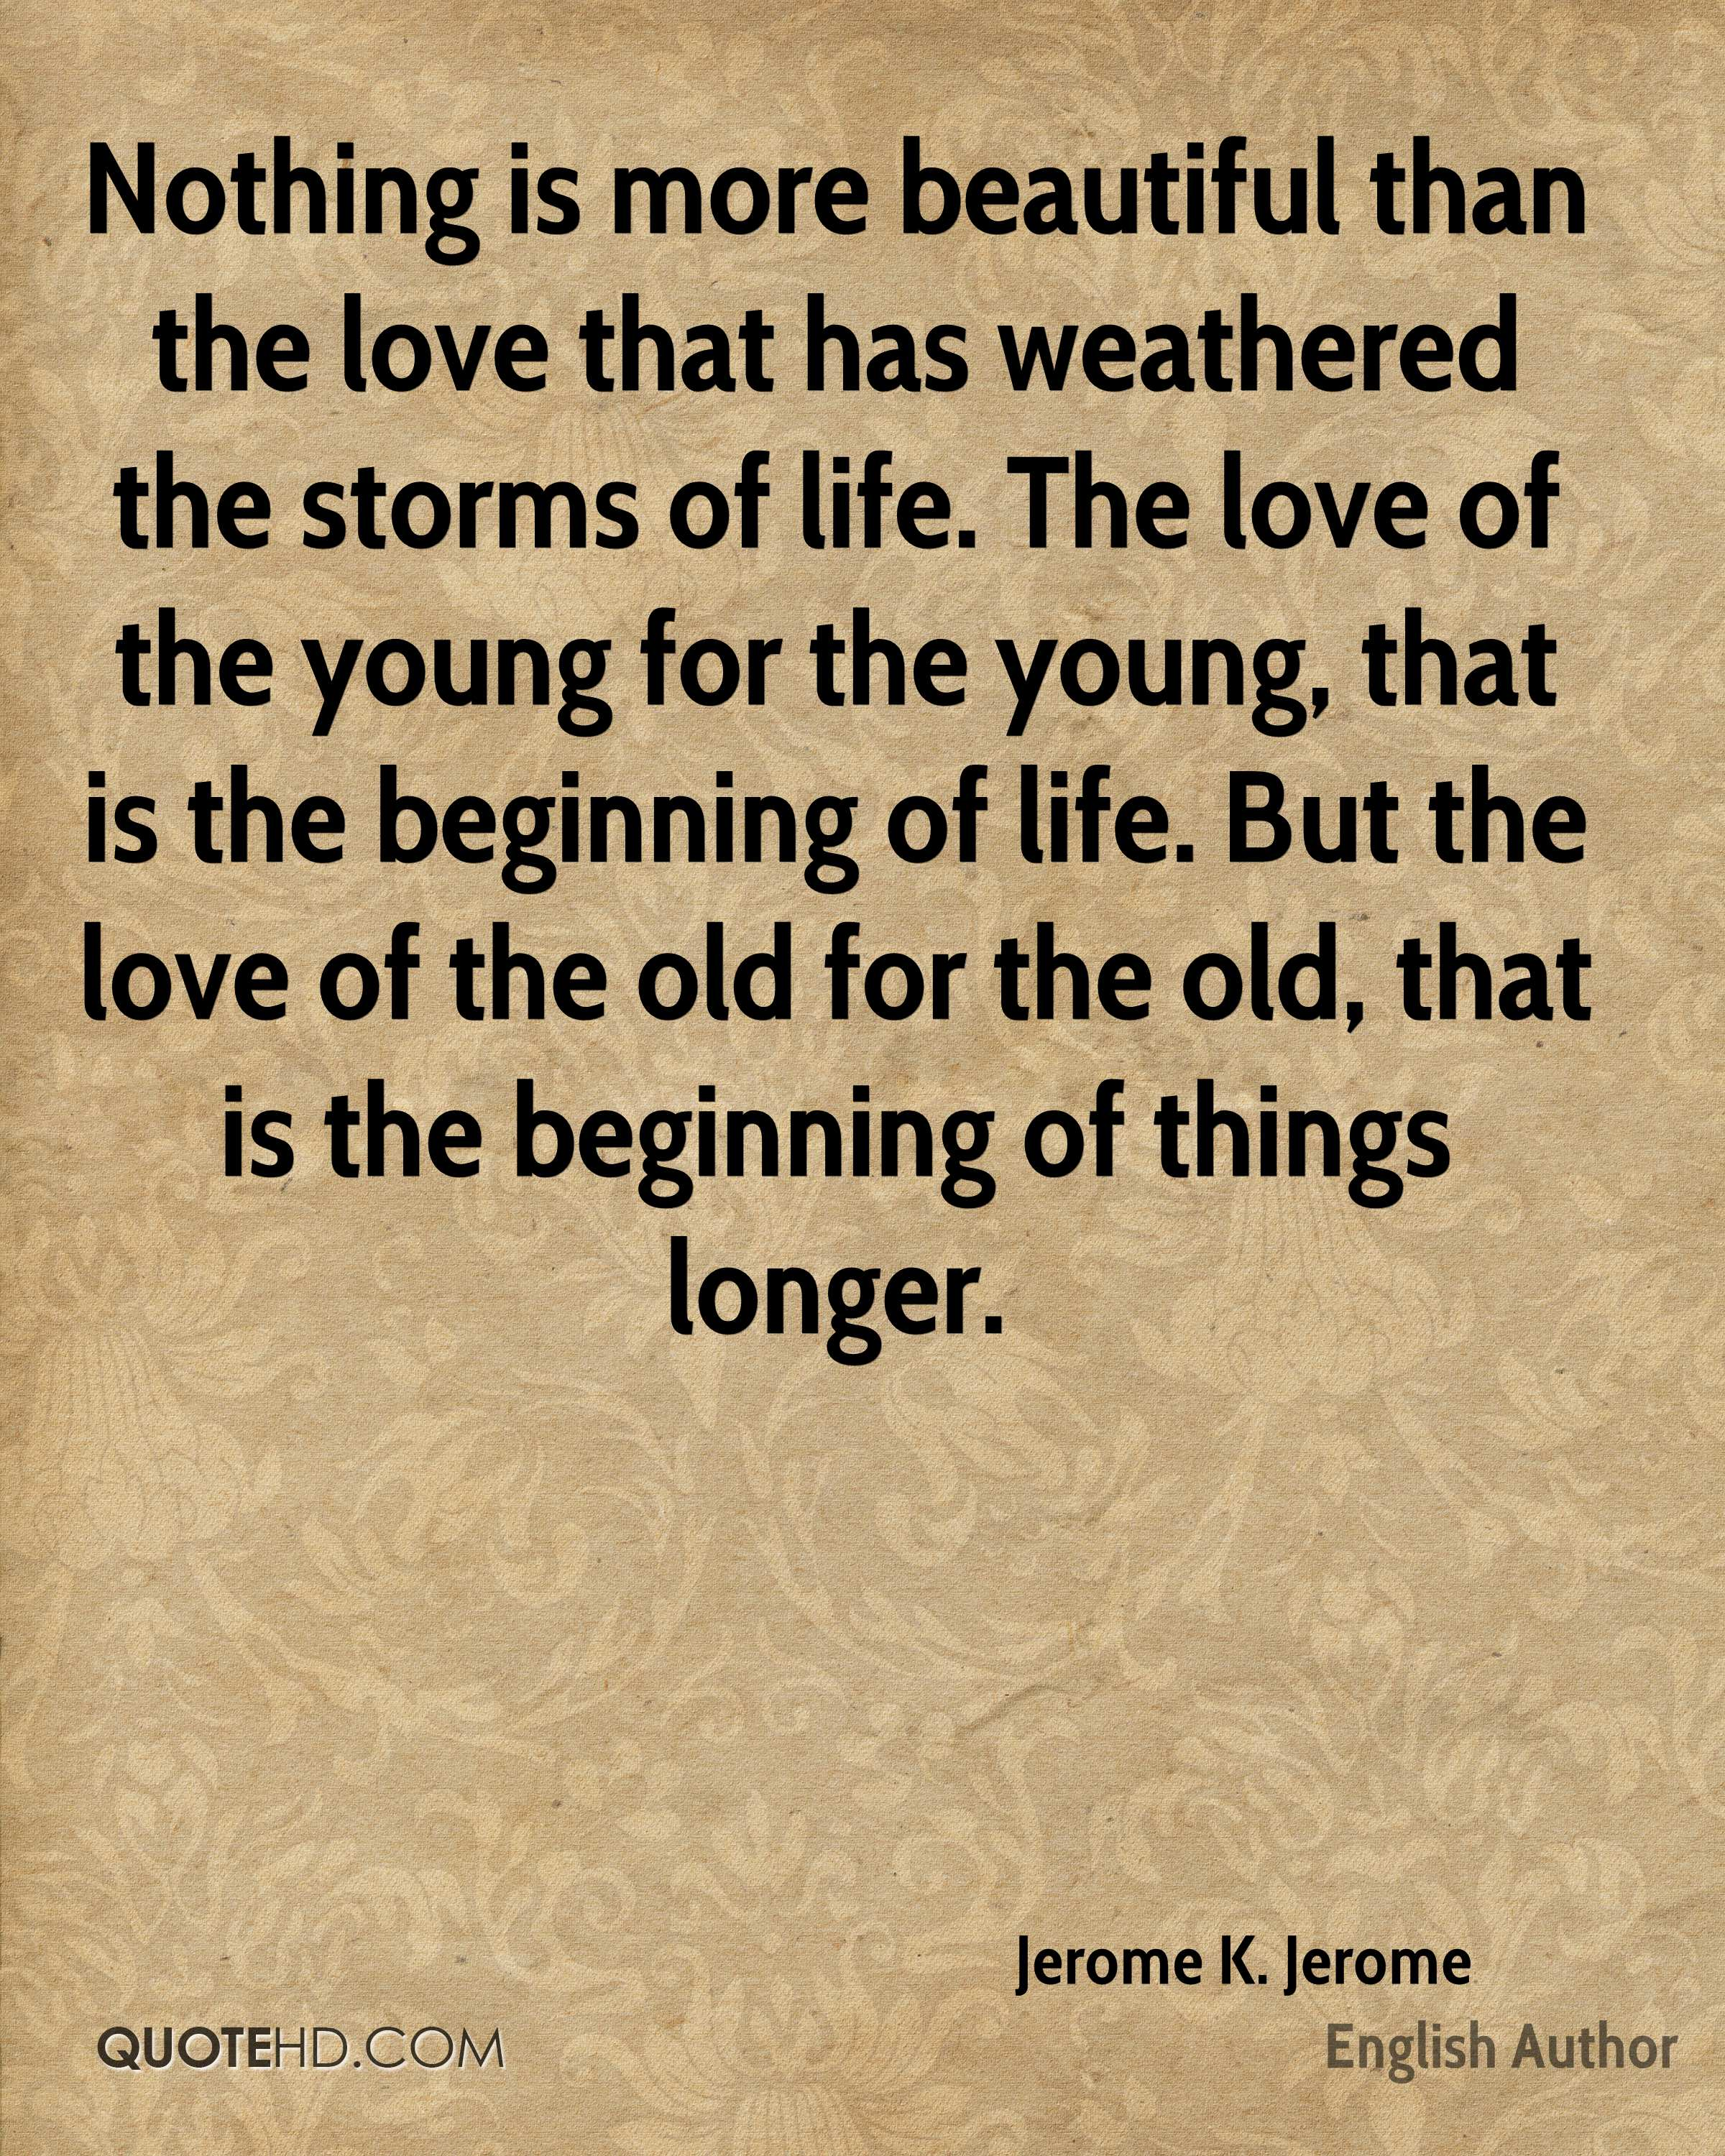 Nothing is more beautiful than the love that has weathered the storms of life. The love of the young for the young, that is the beginning of life. But the love of the old for the old, that is the beginning of things longer.